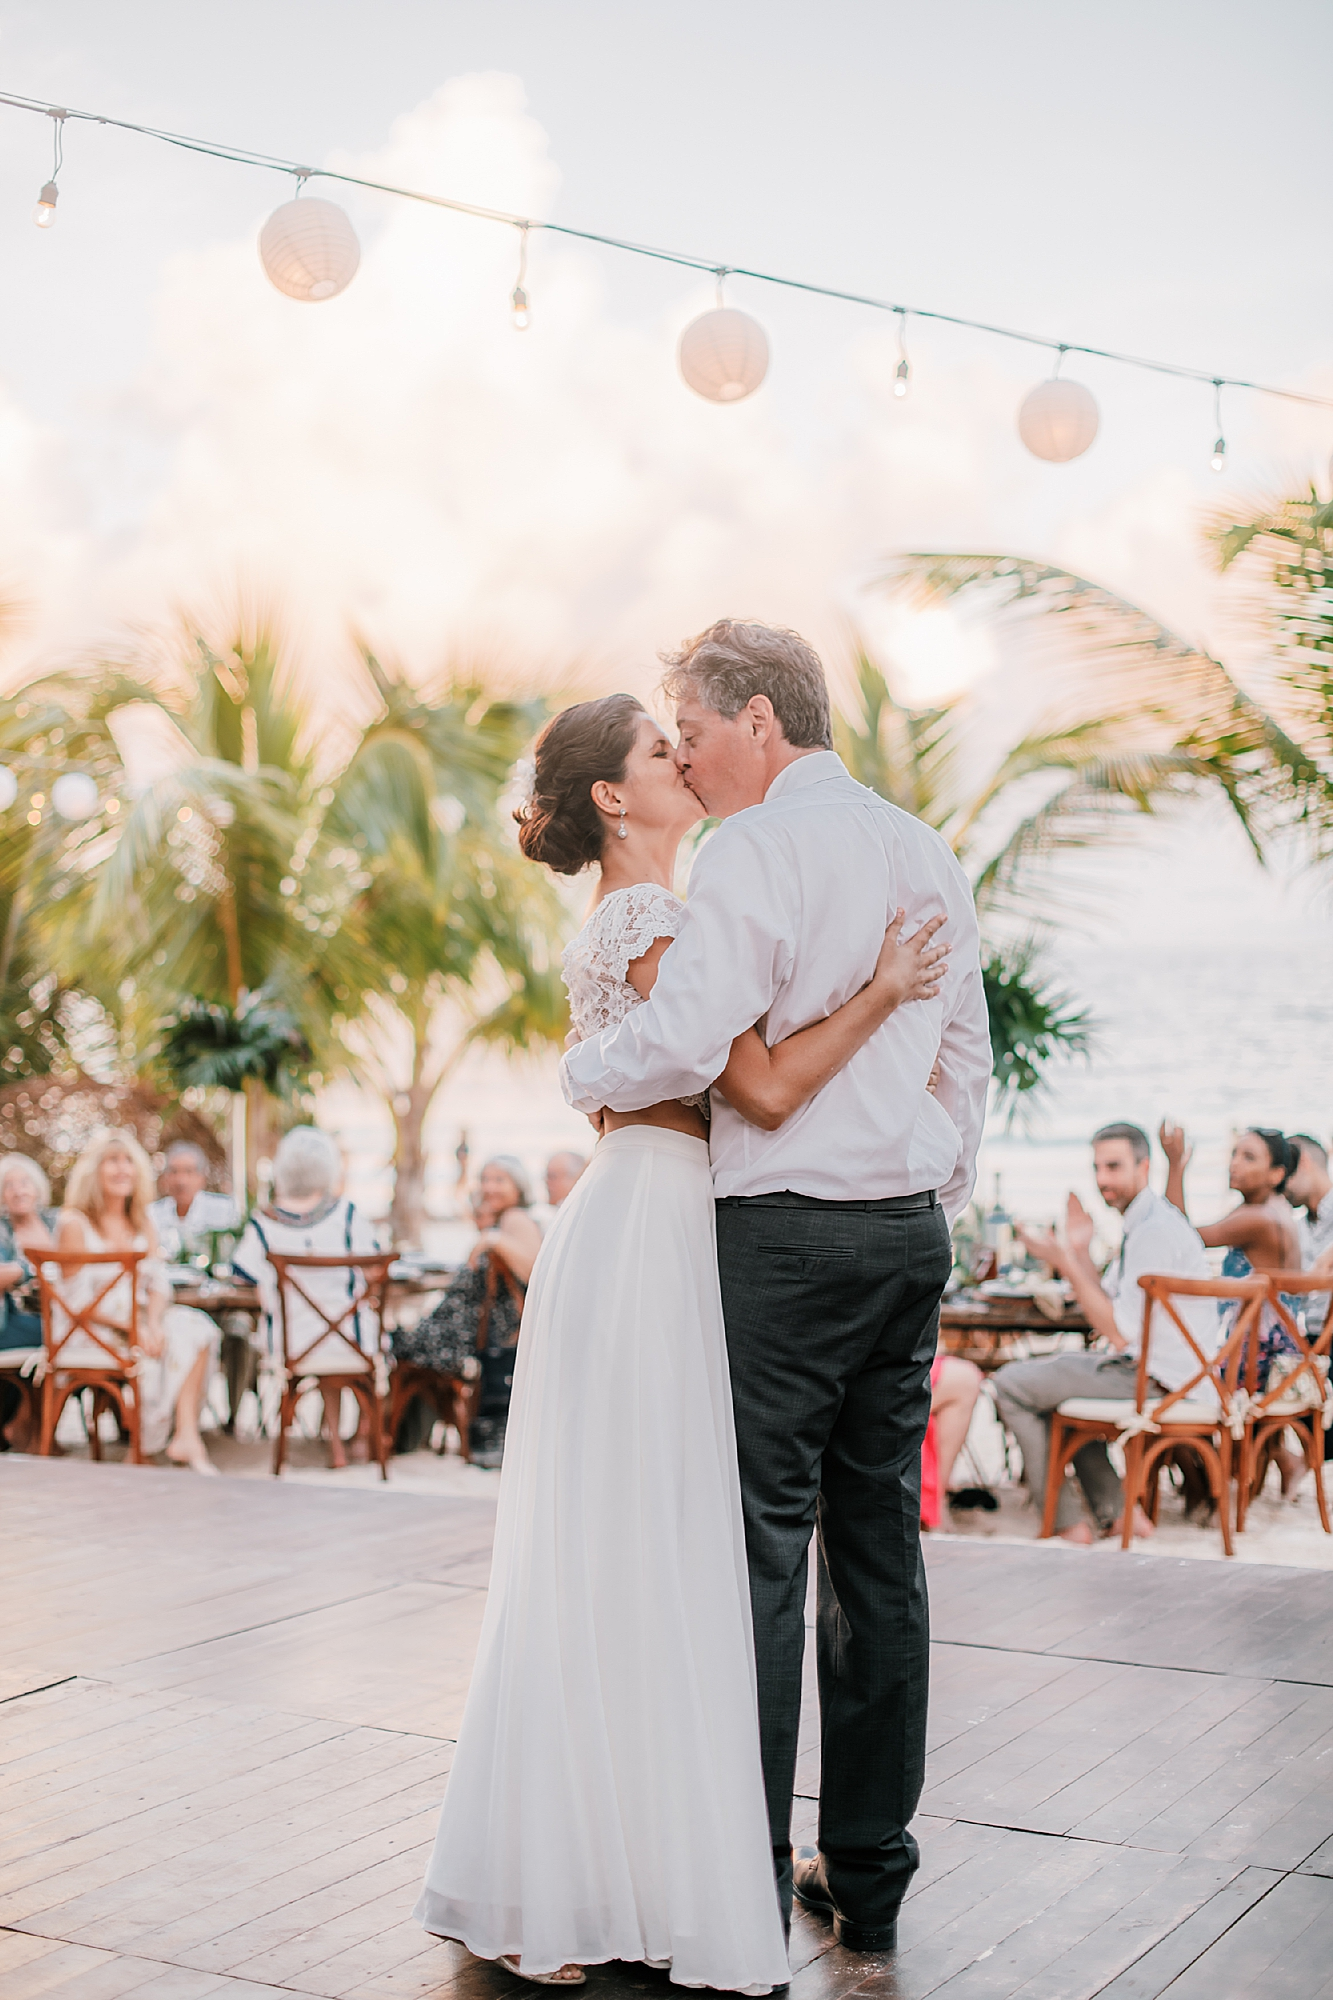 Stylish and Candid Destination Film Wedding Photography in Tulum Mexico by Magdalena Studios 0053